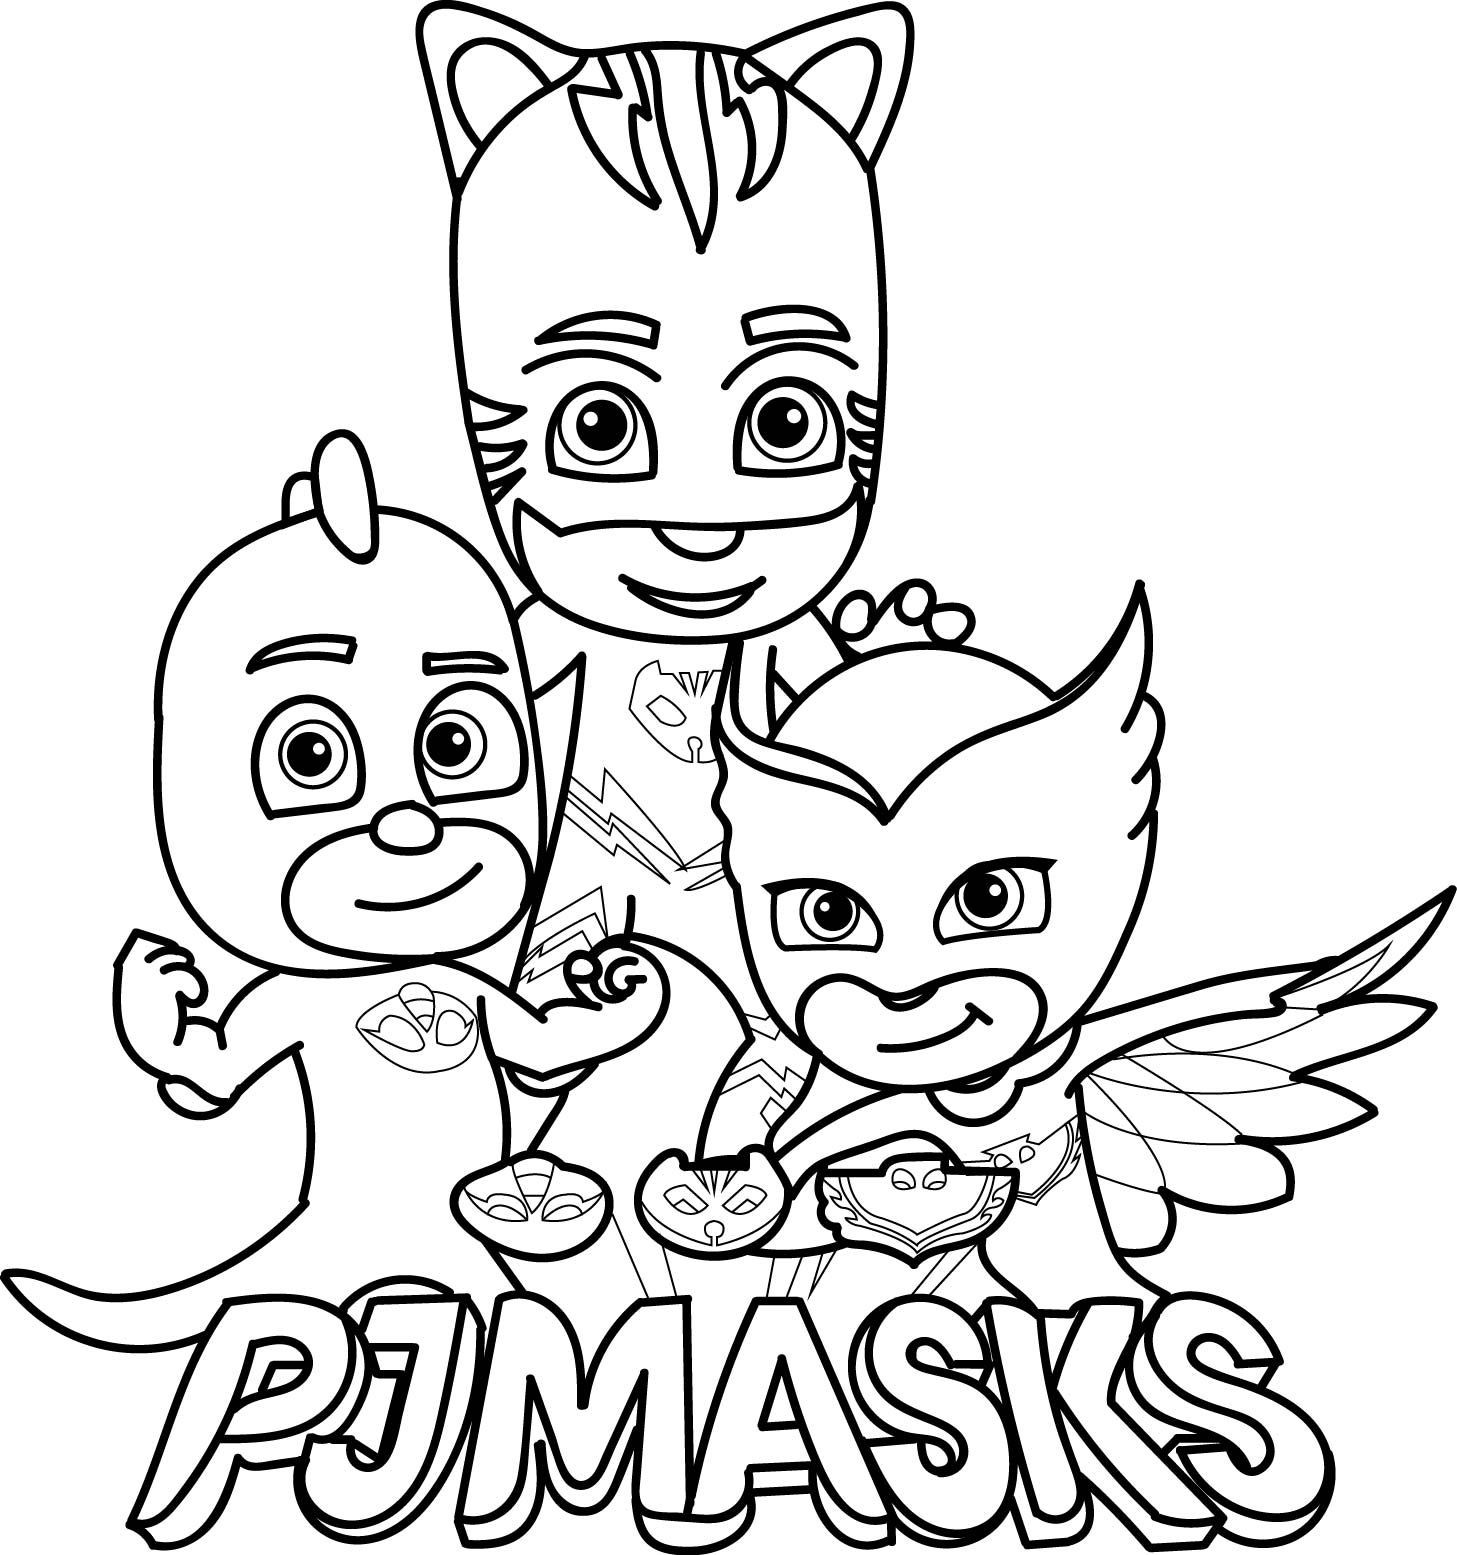 1457x1555 Fresh Coloring Pages For Pj Masks Best Of Catboy Coloring Page